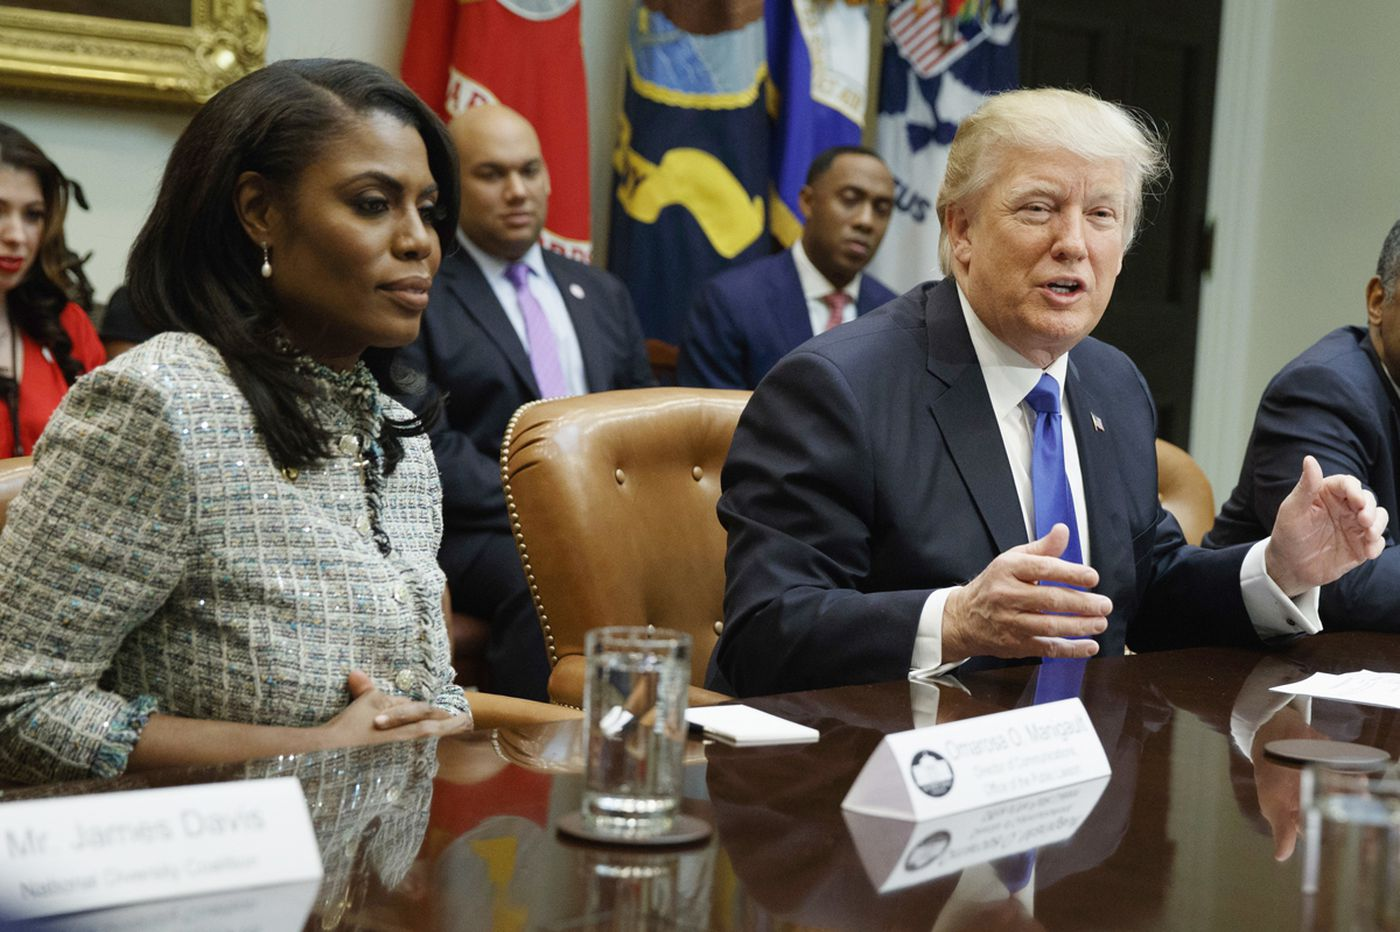 Omarosa says she has more tapes as Trump lashes out: 'Doesn't know how to control himself'